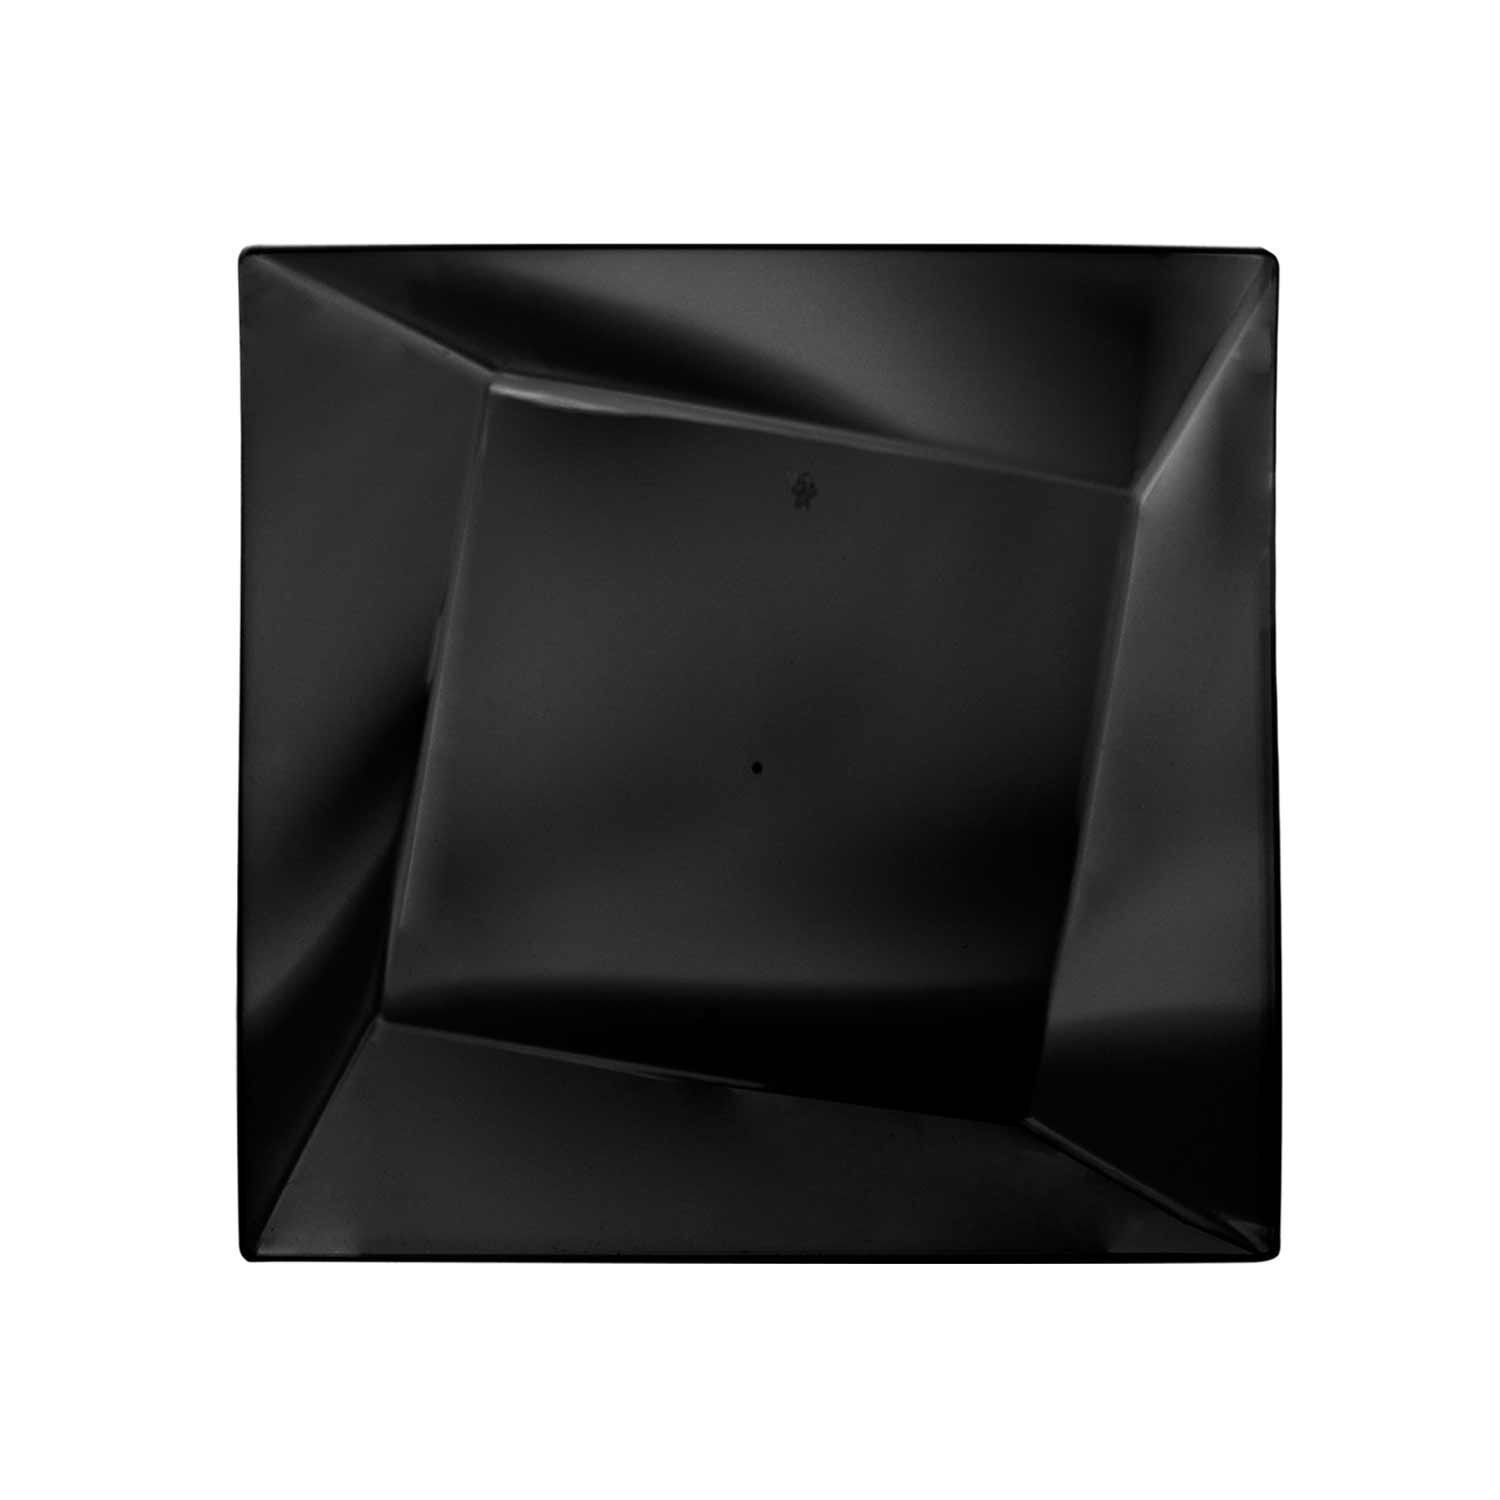 Party Essentials N952017 Hard Plastic Twist/Square Plates, 9.5'', Black (Pack of 160) by Party Essentials